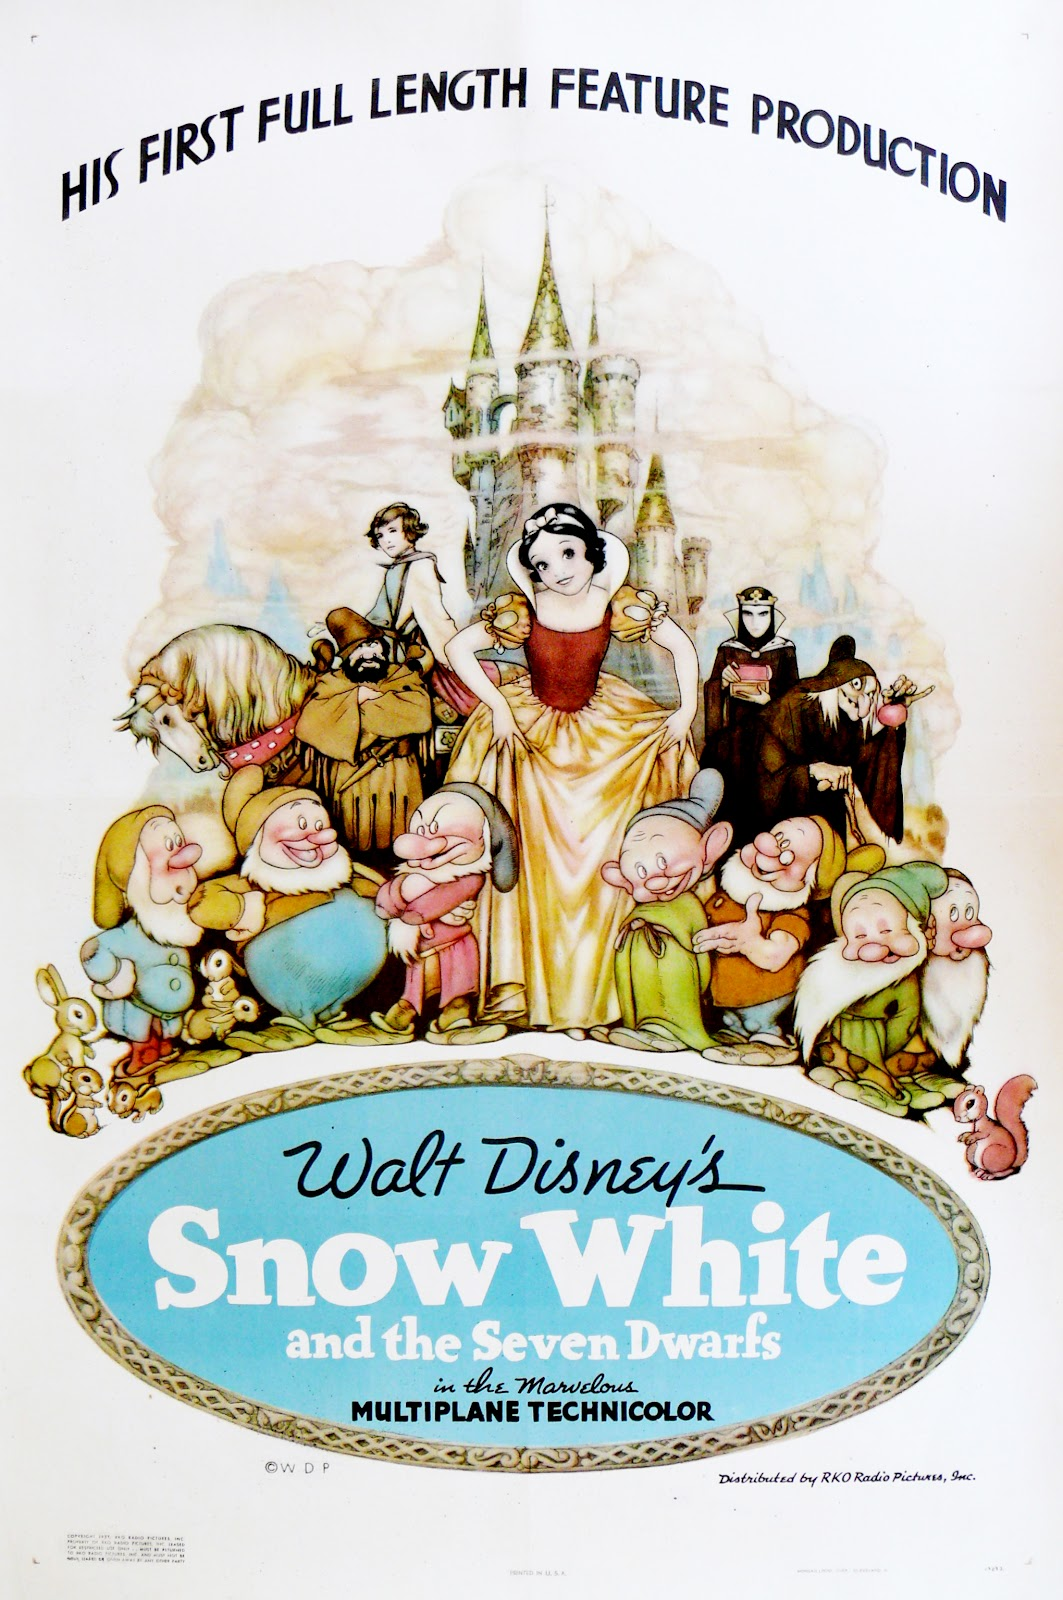 snow white and the seven dwarfs 1937 movie